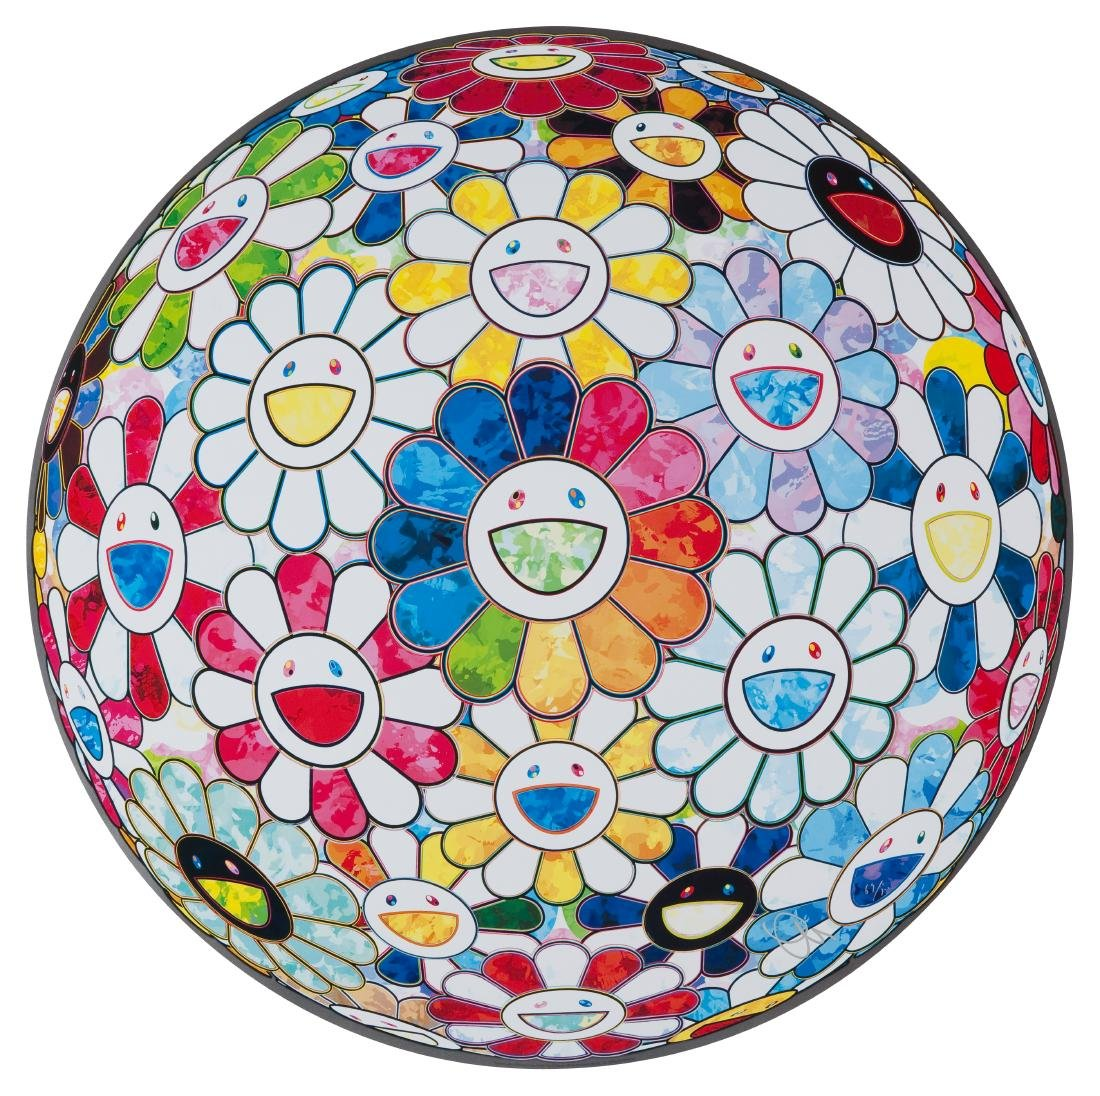 TAKASHI MURAKAMI Scenery With A Rainbow In The Midst